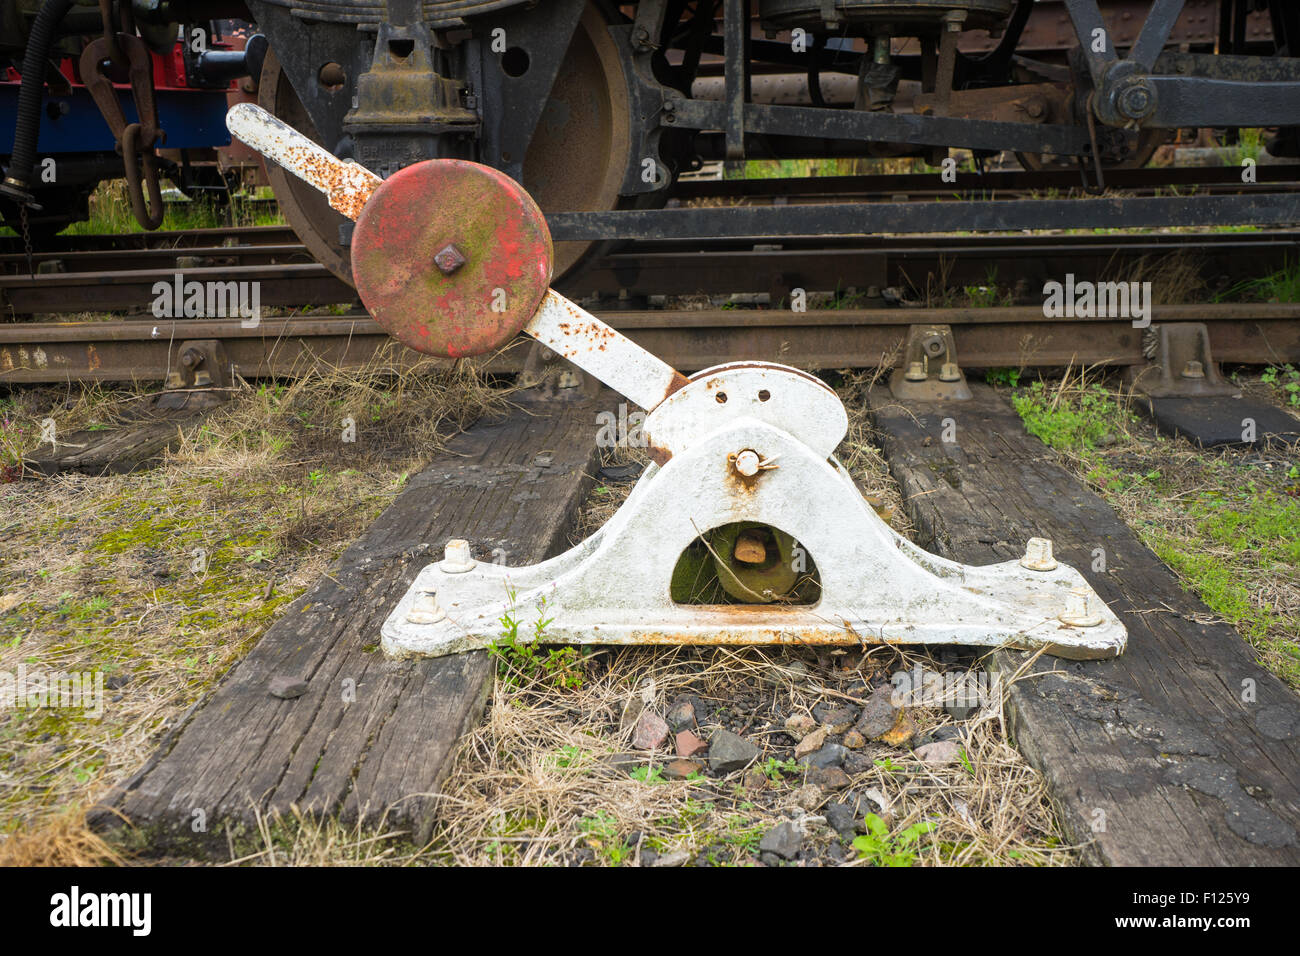 Lever Train Track : Old manually operated railway train track points lever a